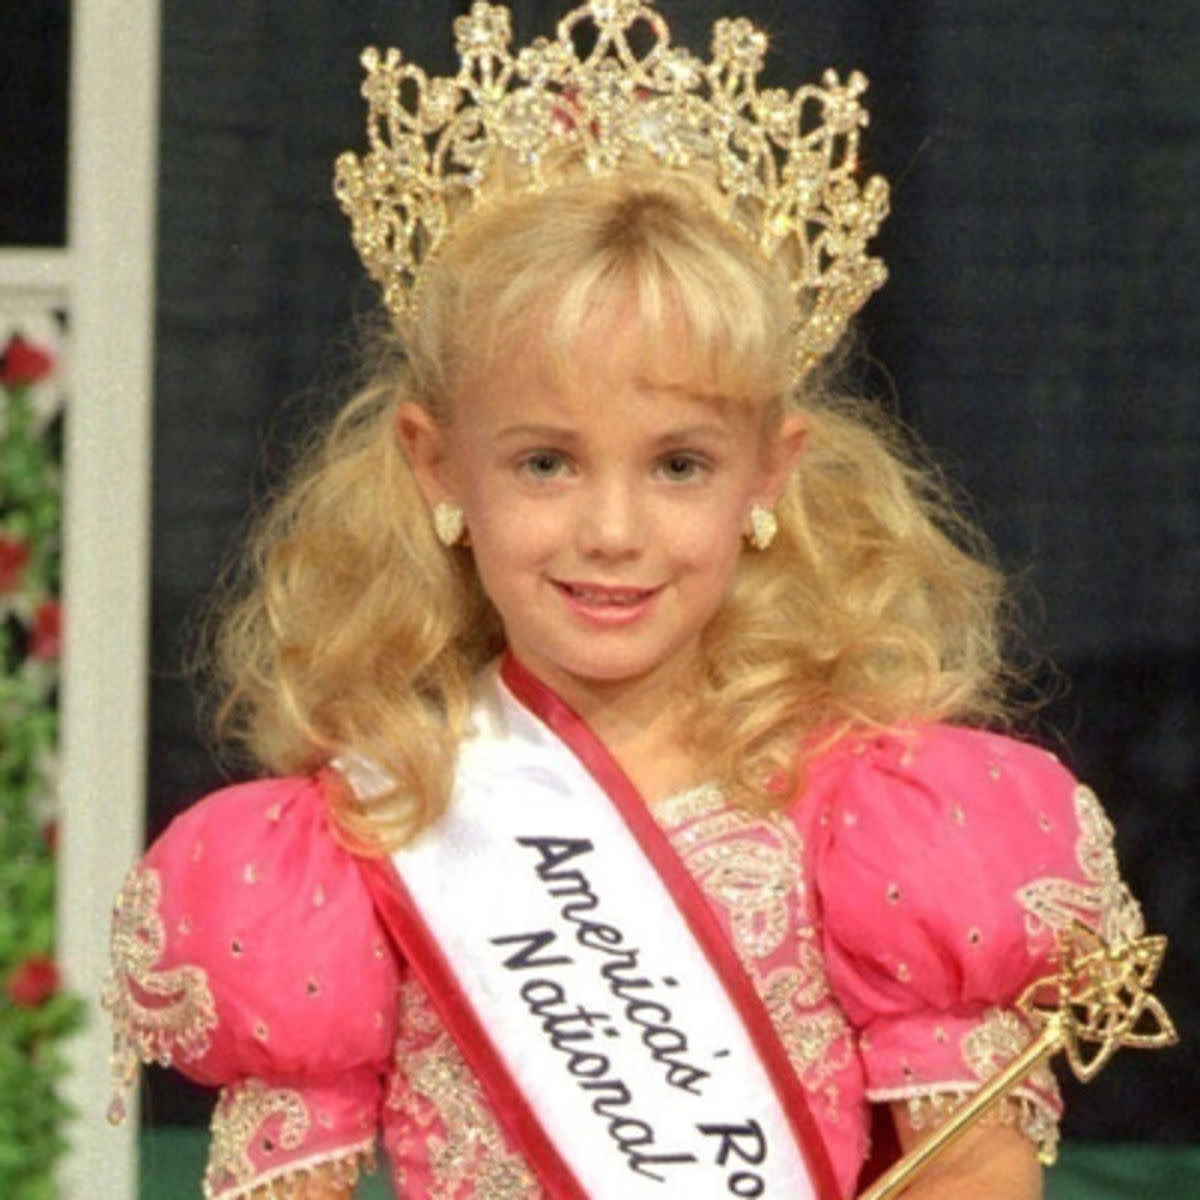 One of the many pageant photos the media chose to use.